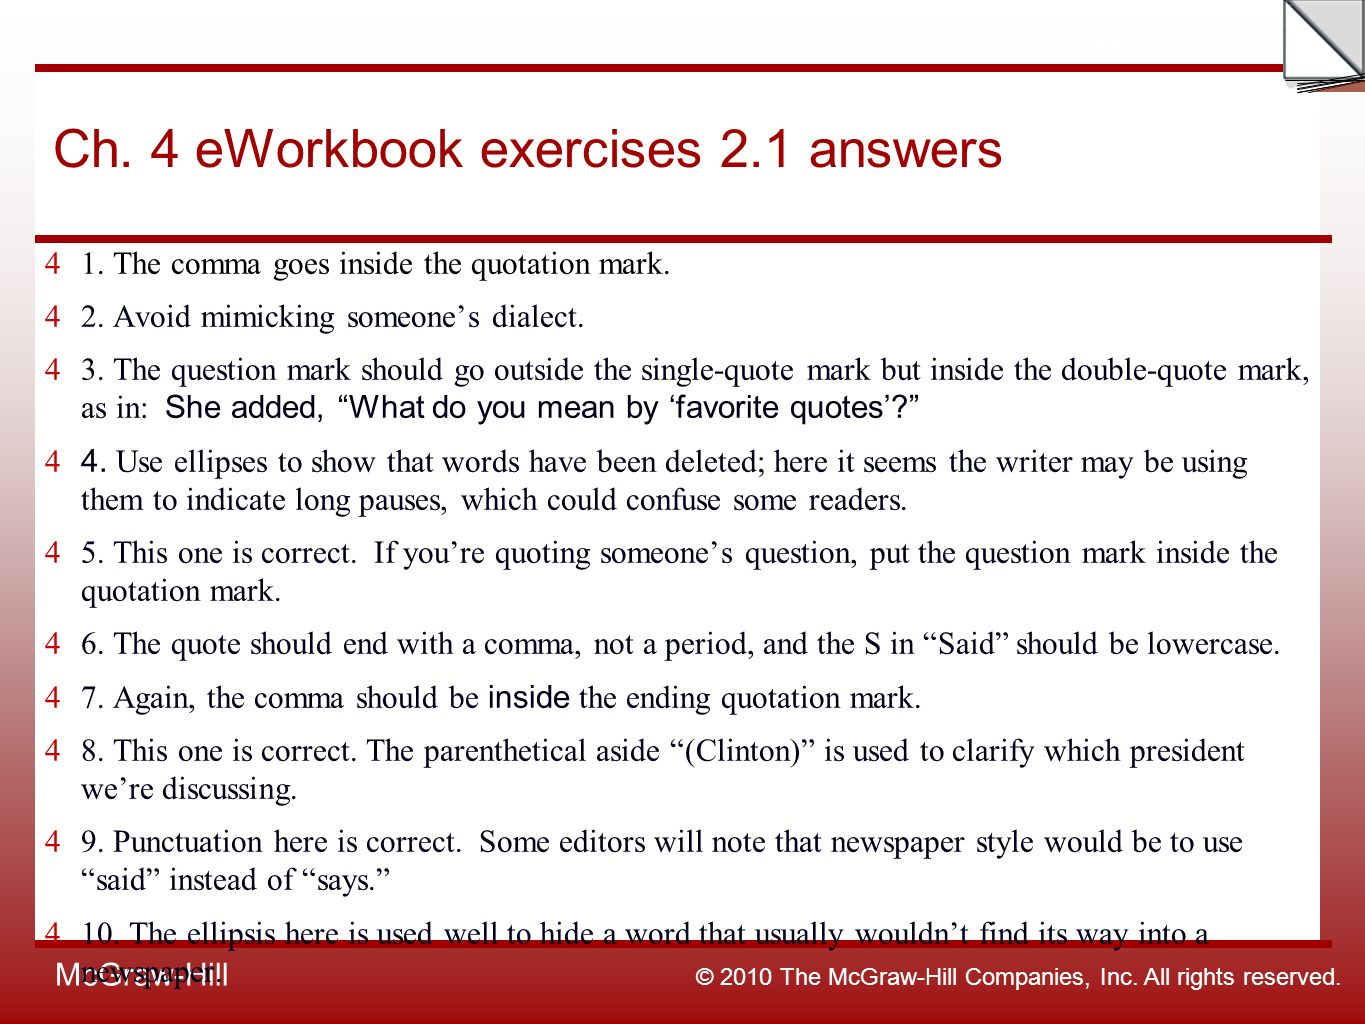 Favorite Quotation Week 11 Ch3 Eworkbook Lead Exercise  Ppt Download